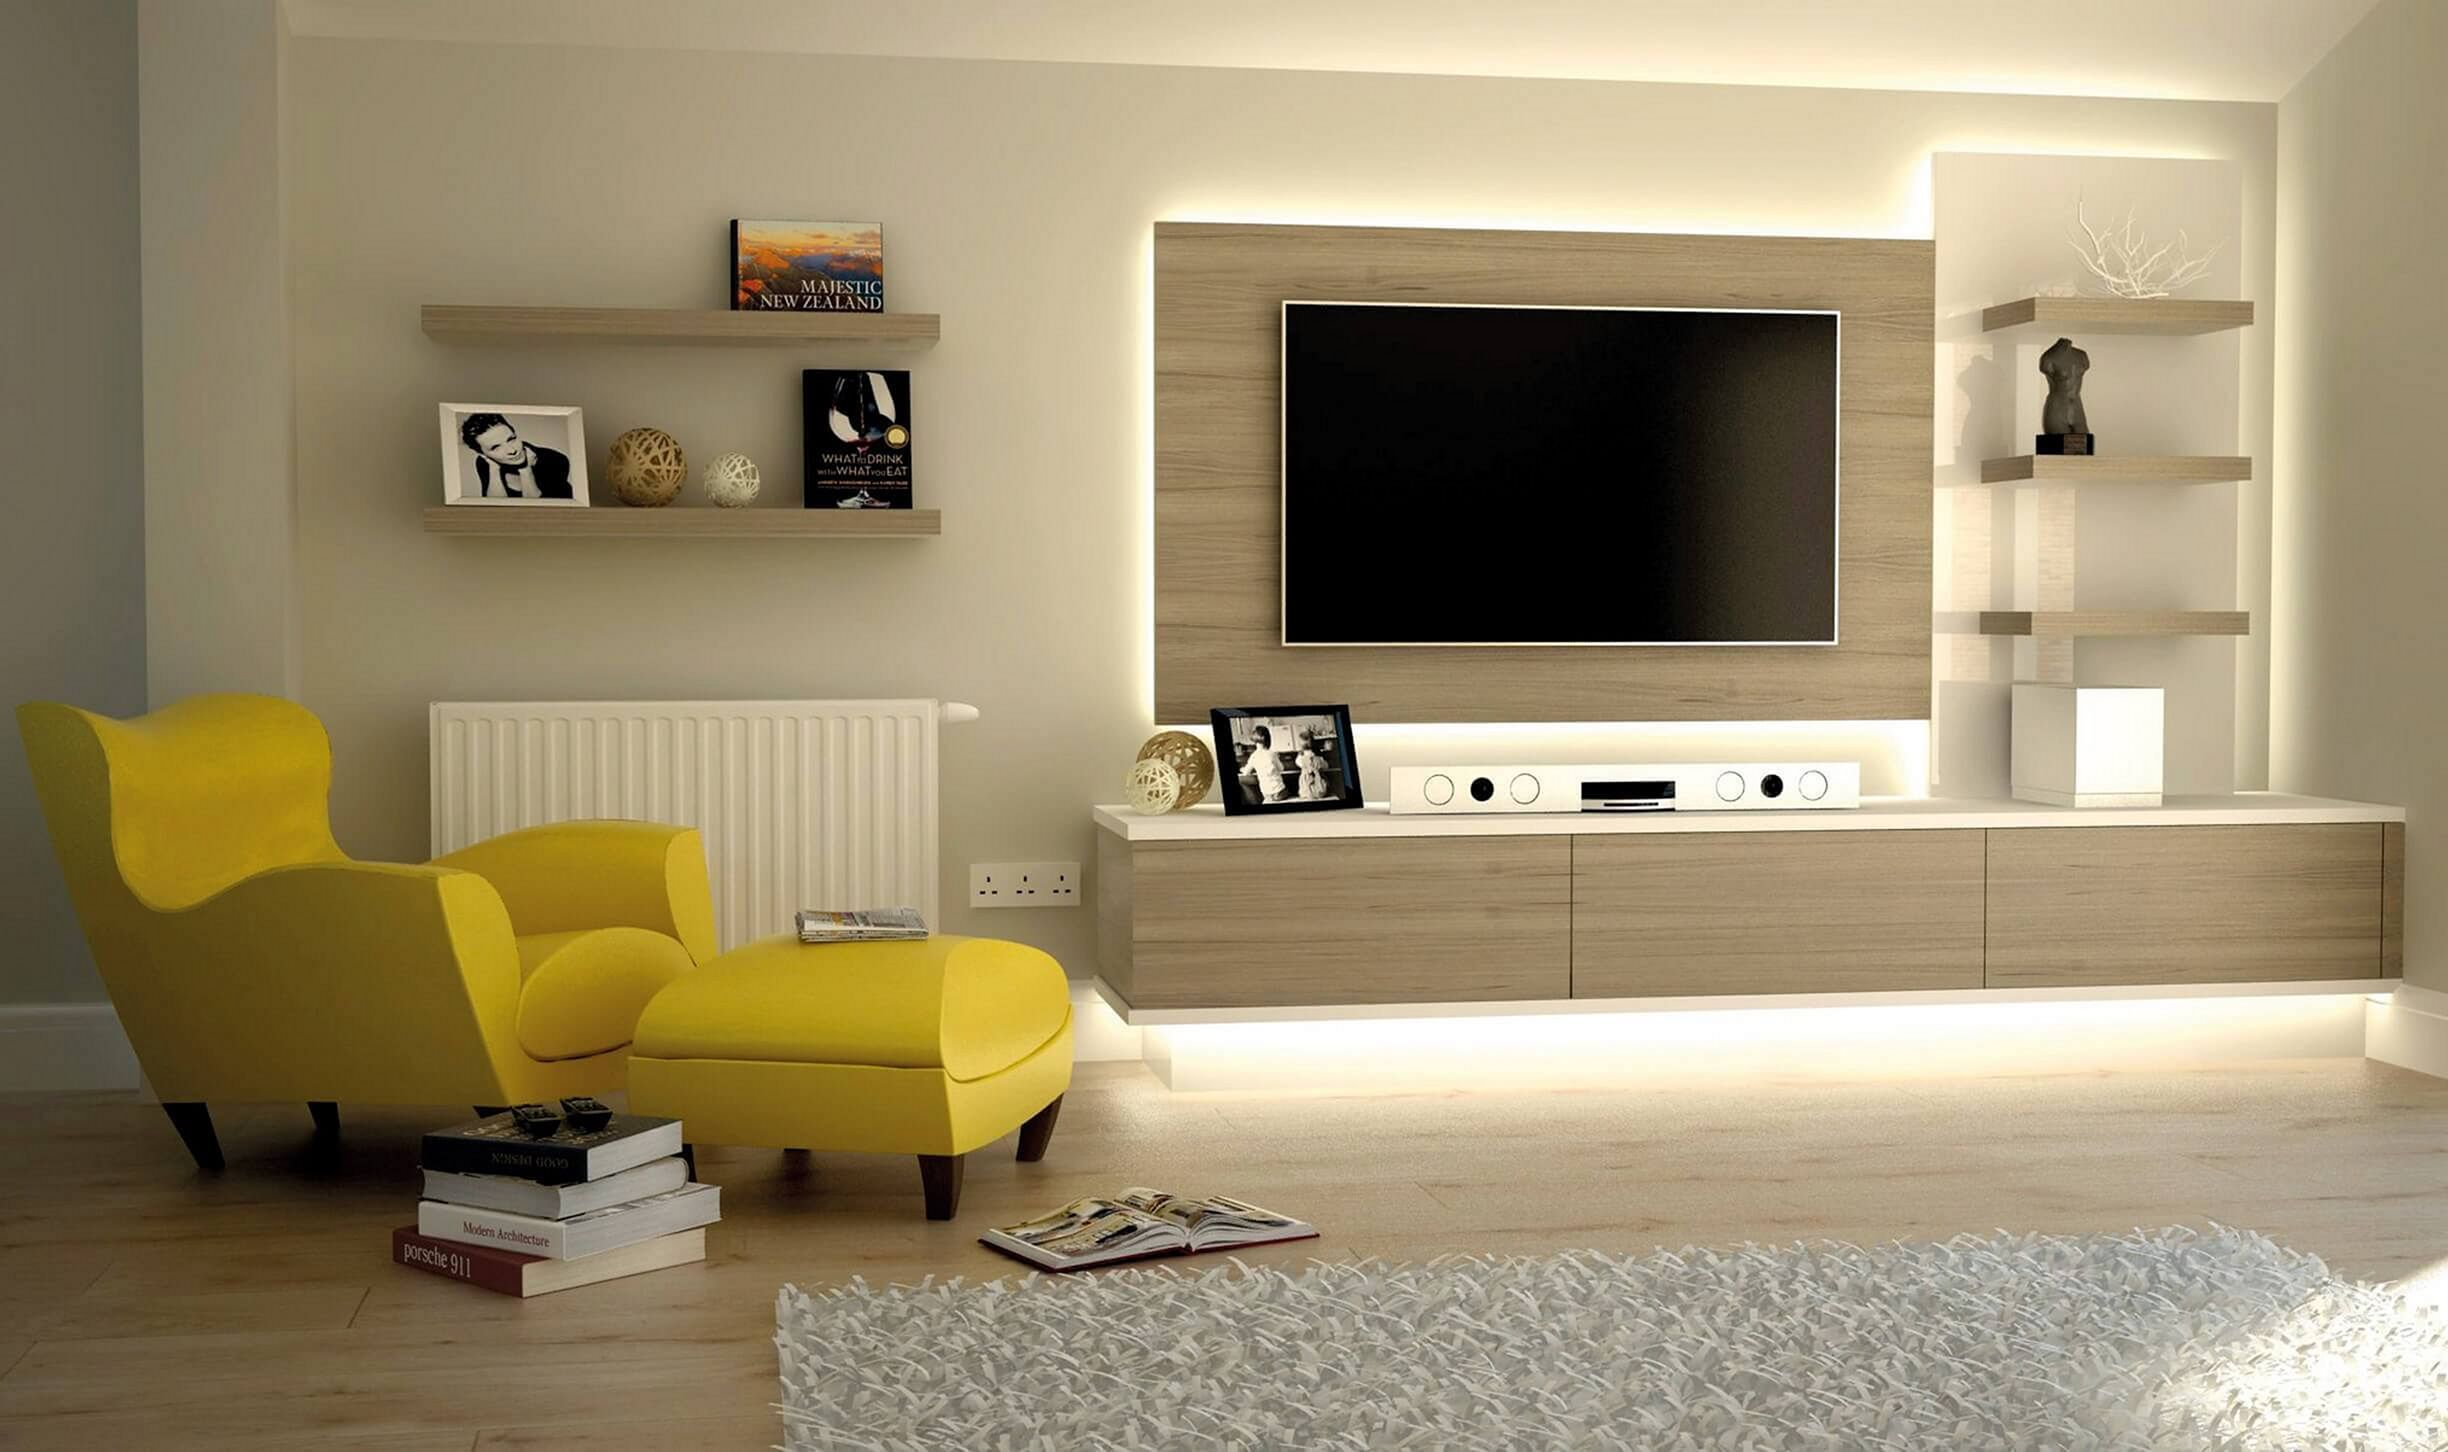 Amazing Tv Wall Design Ideas To Enhance Your Home Style Teracee Bedroom Tv Unit Design Living Room Wall Units Tv Room Design